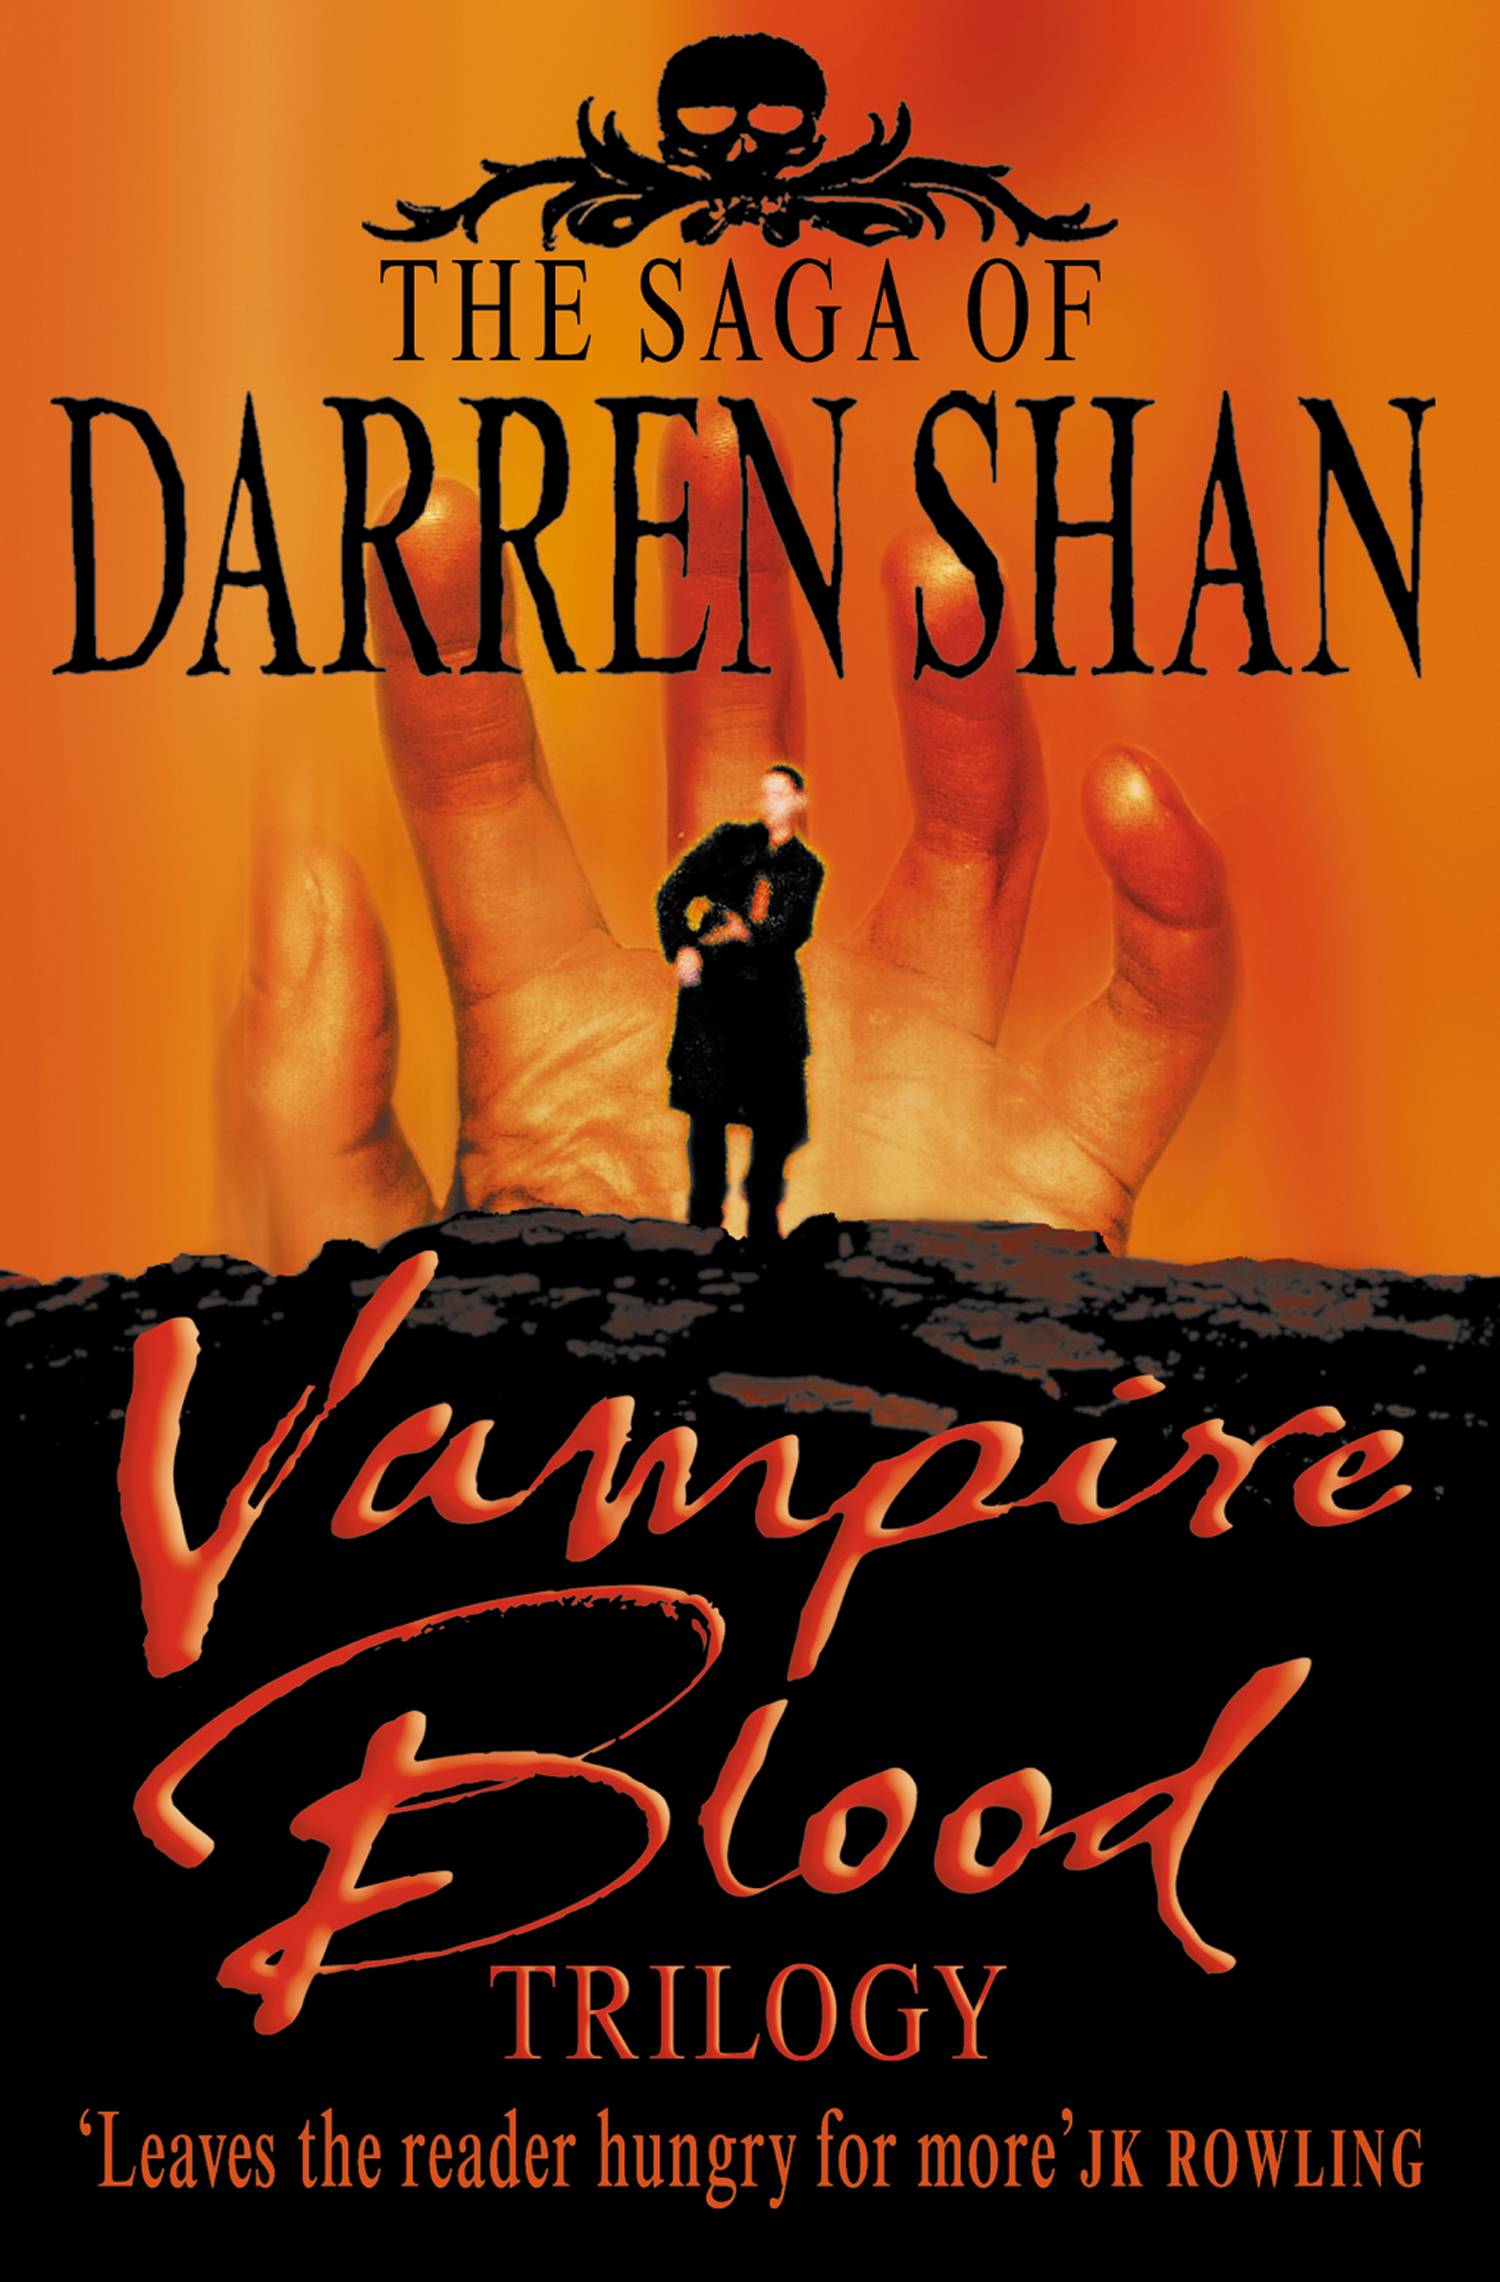 Vampire Blood Trilogy (The Saga of Darren Shan)